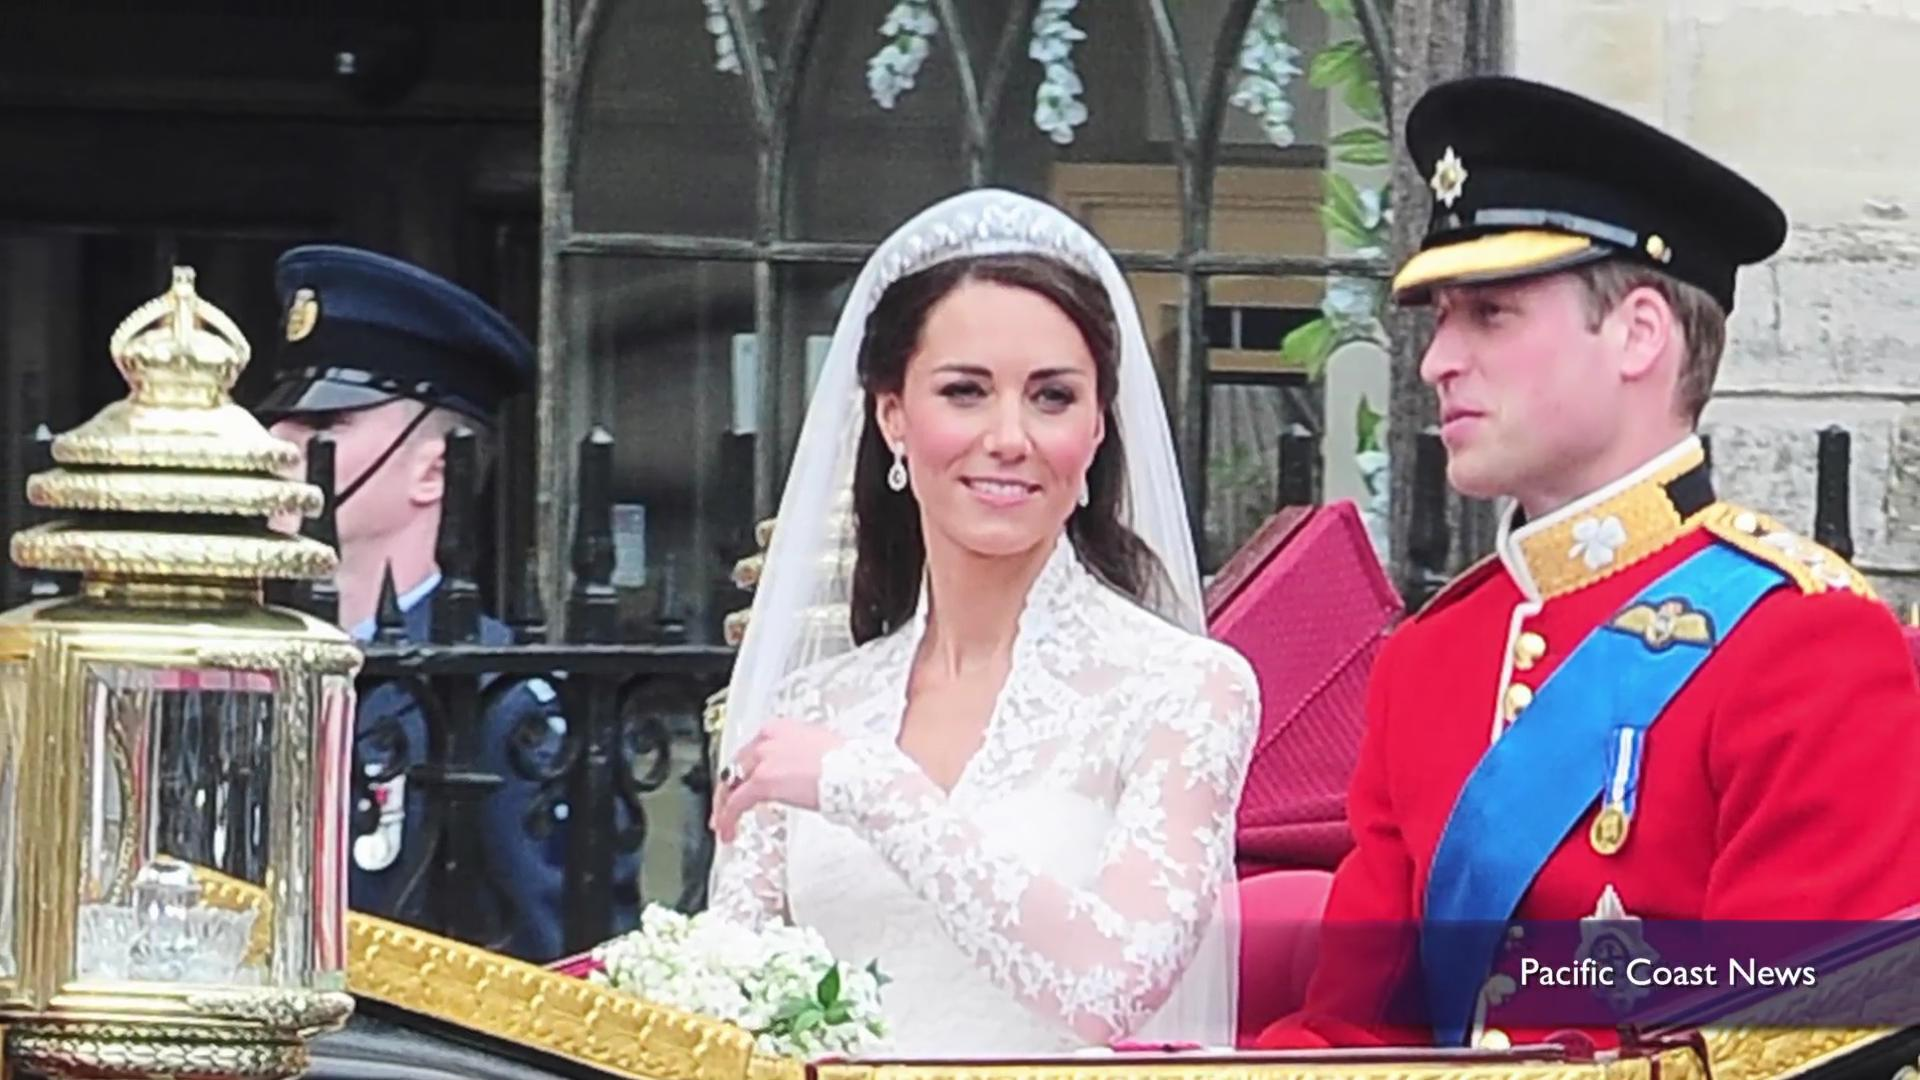 Royals celebrate their fourth anniversary